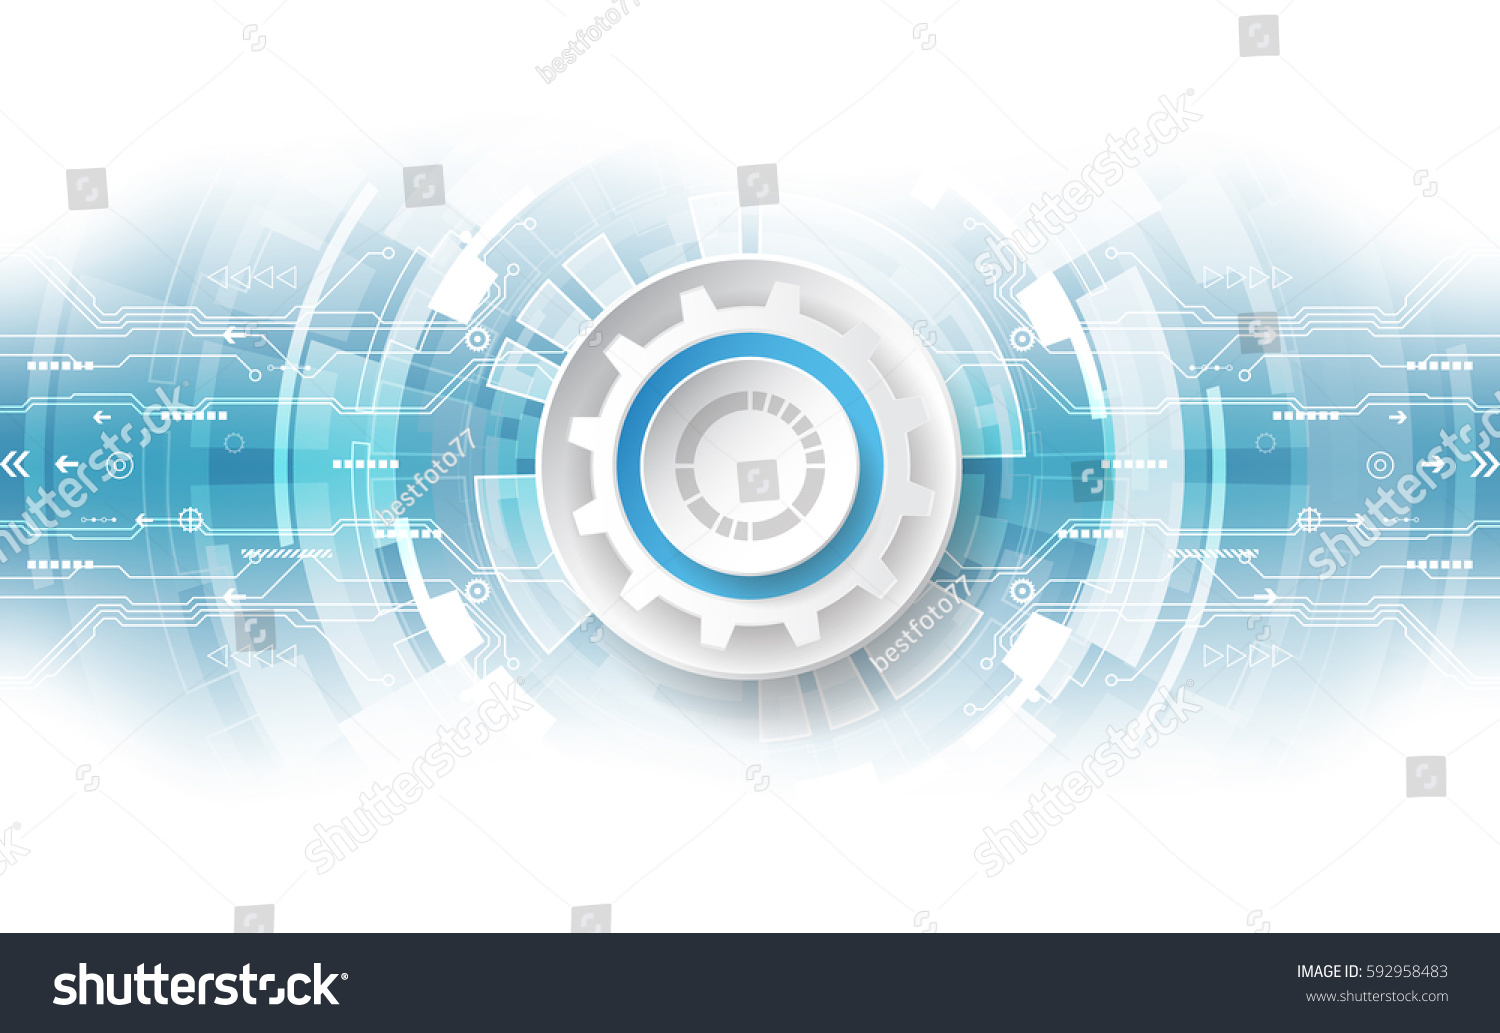 Technology Abstract Background Stock Illustration: Abstract Technological Background Concept Various